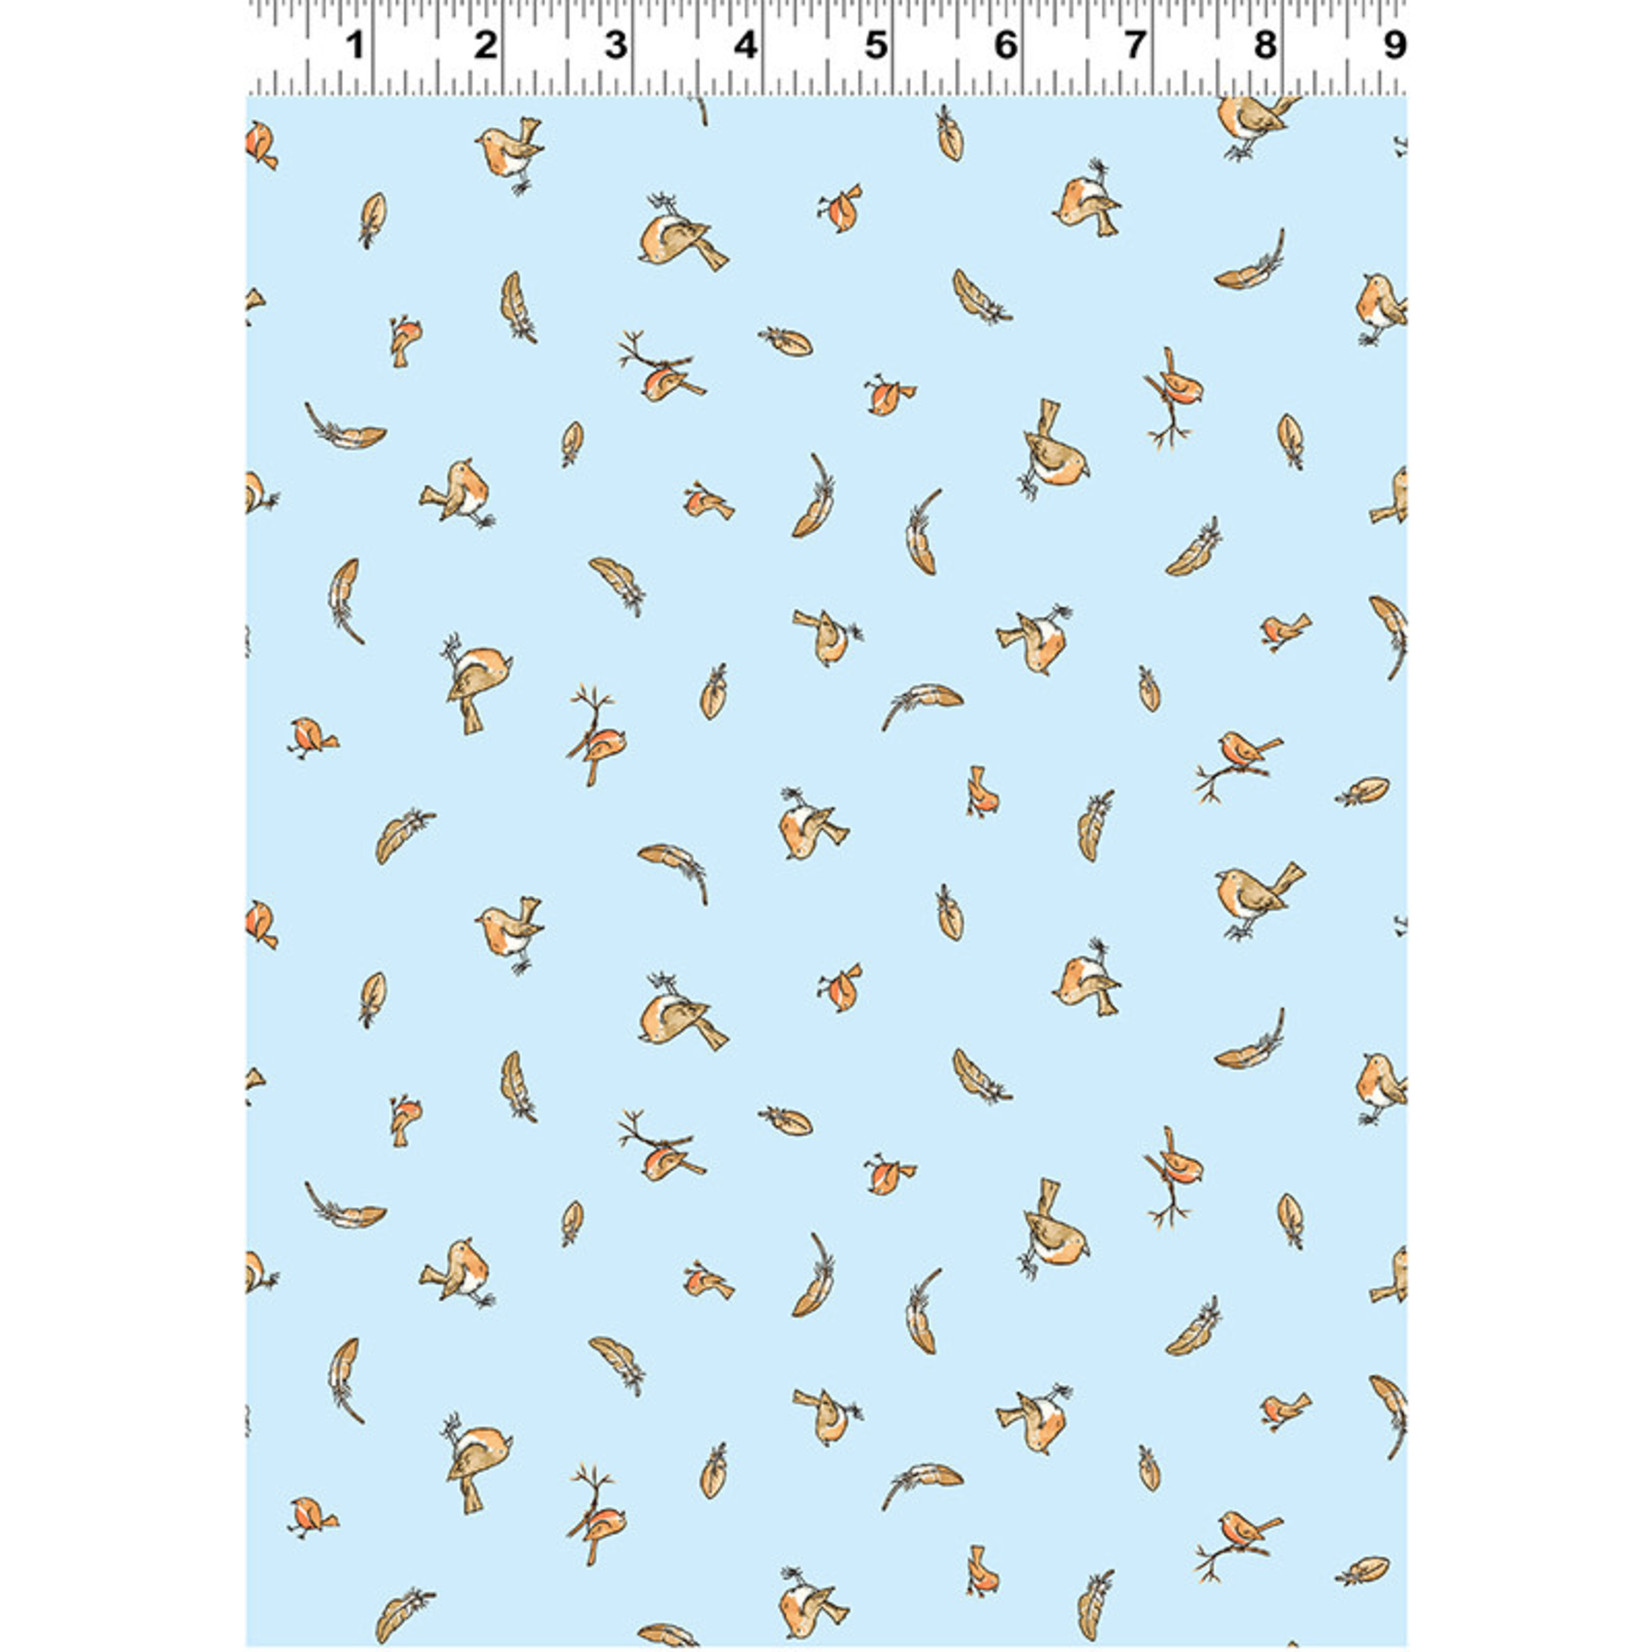 Clothworks Guess How Much I Love You, Tossed Birds & Feathers, Blue (Y3082-29) per cm or $20/m